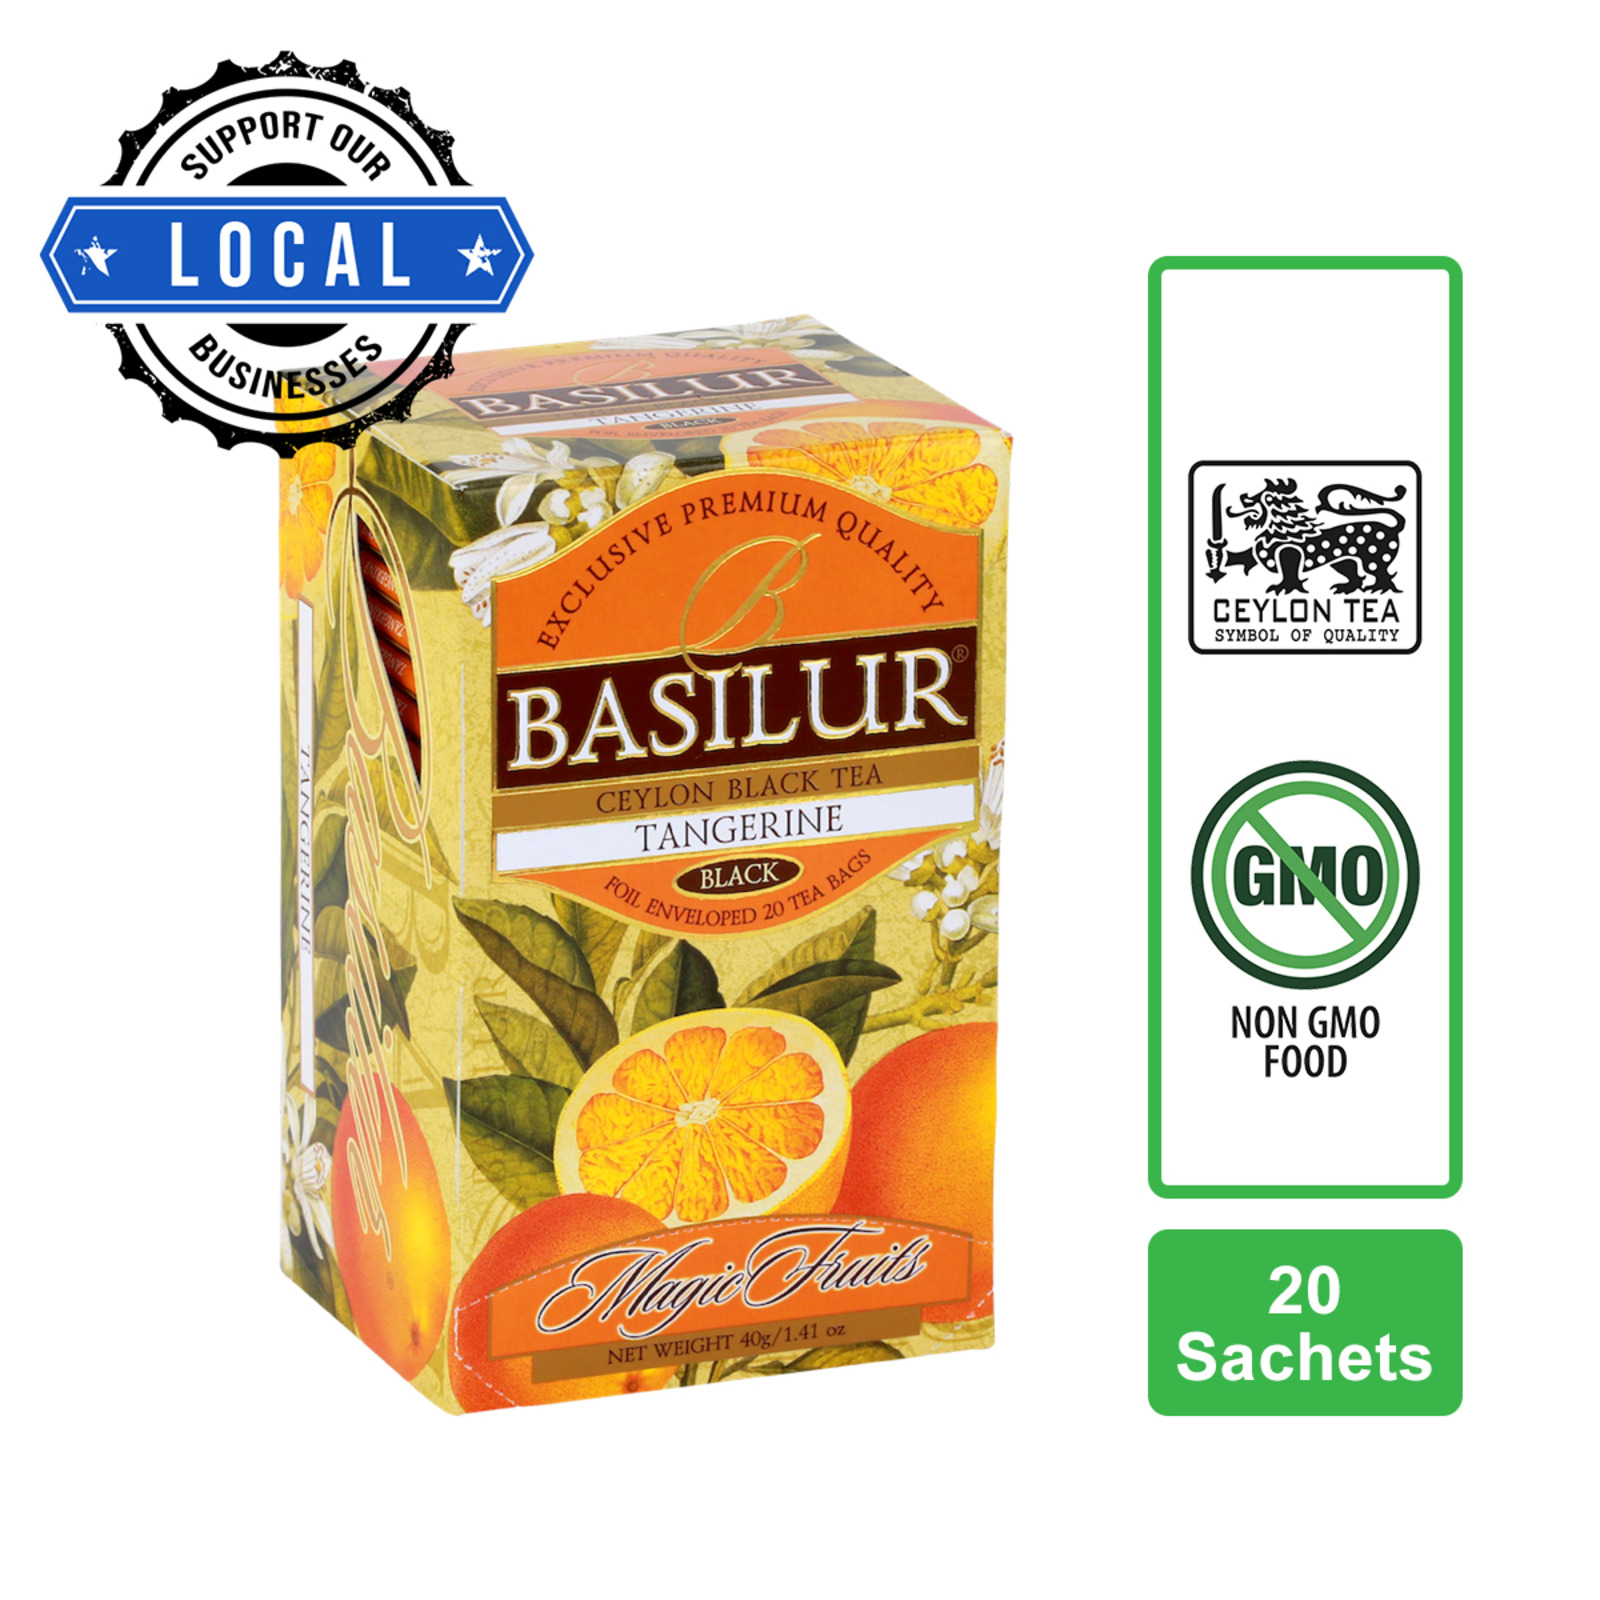 Basilur Tangerine Black Tea